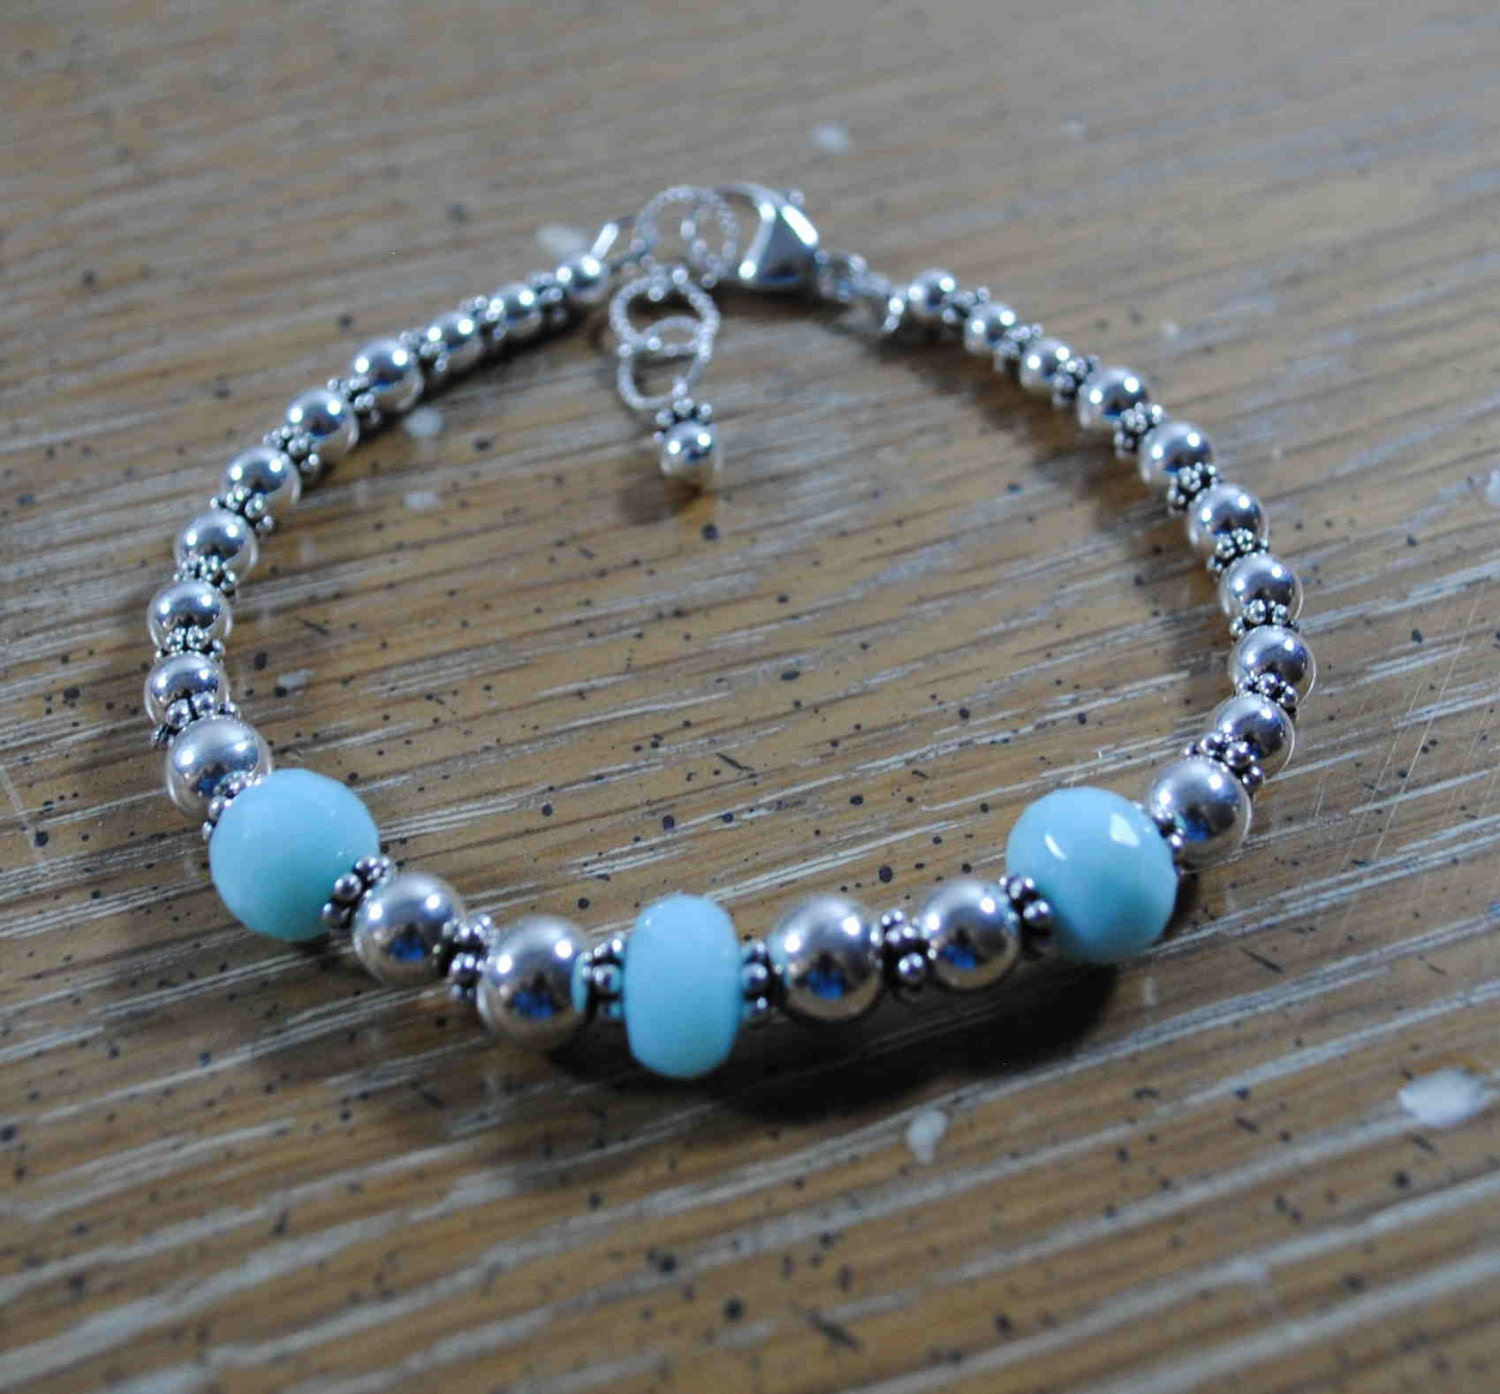 Faceted Peruvian Blue Opal and Sterling Silver Bracelet - BridgetsCollection